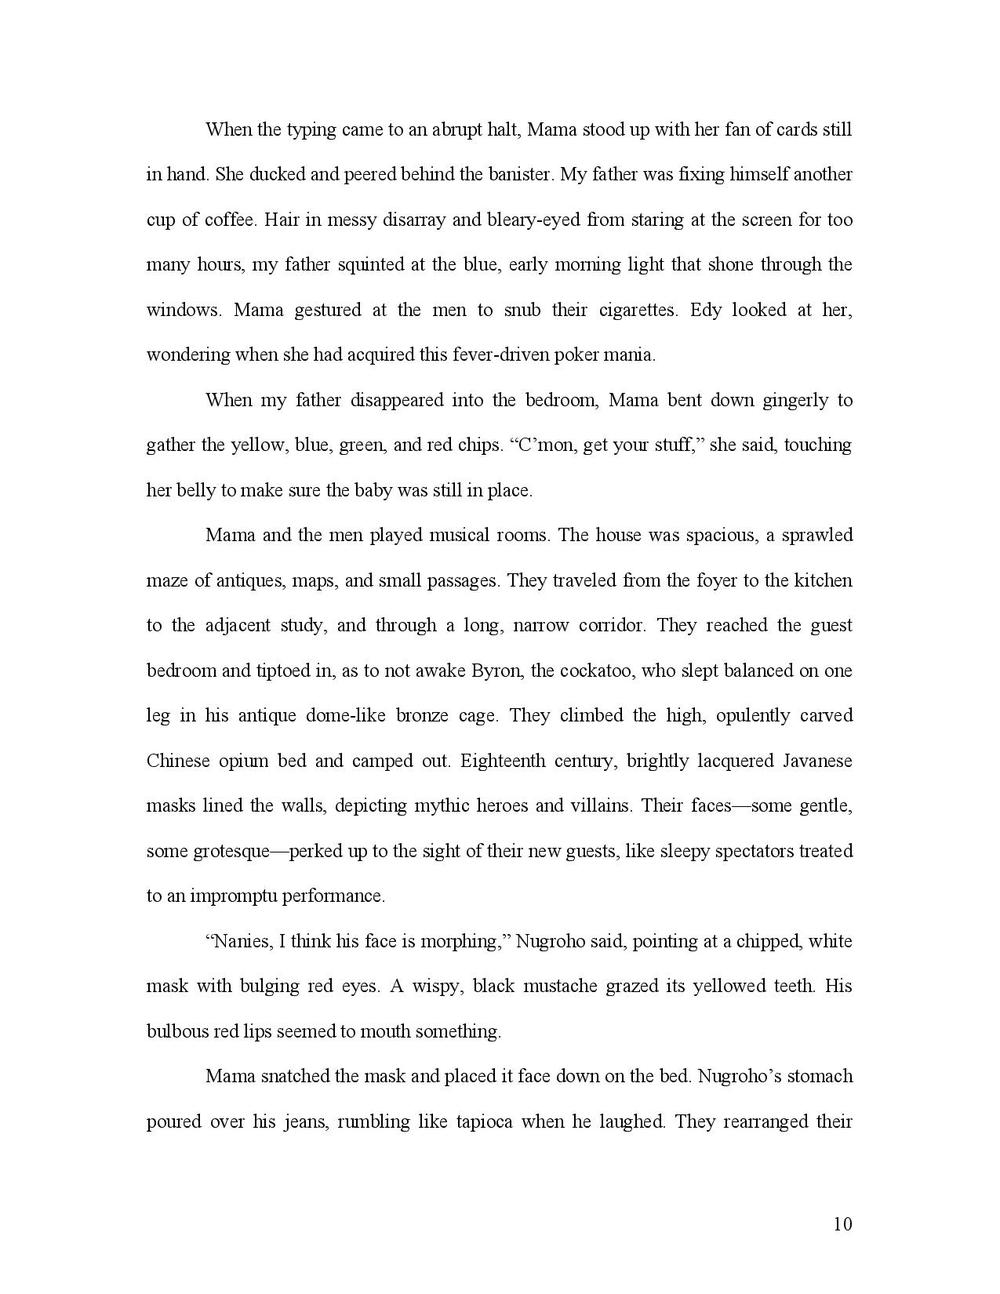 In The Cards_edit_excerpt-page-010.jpg